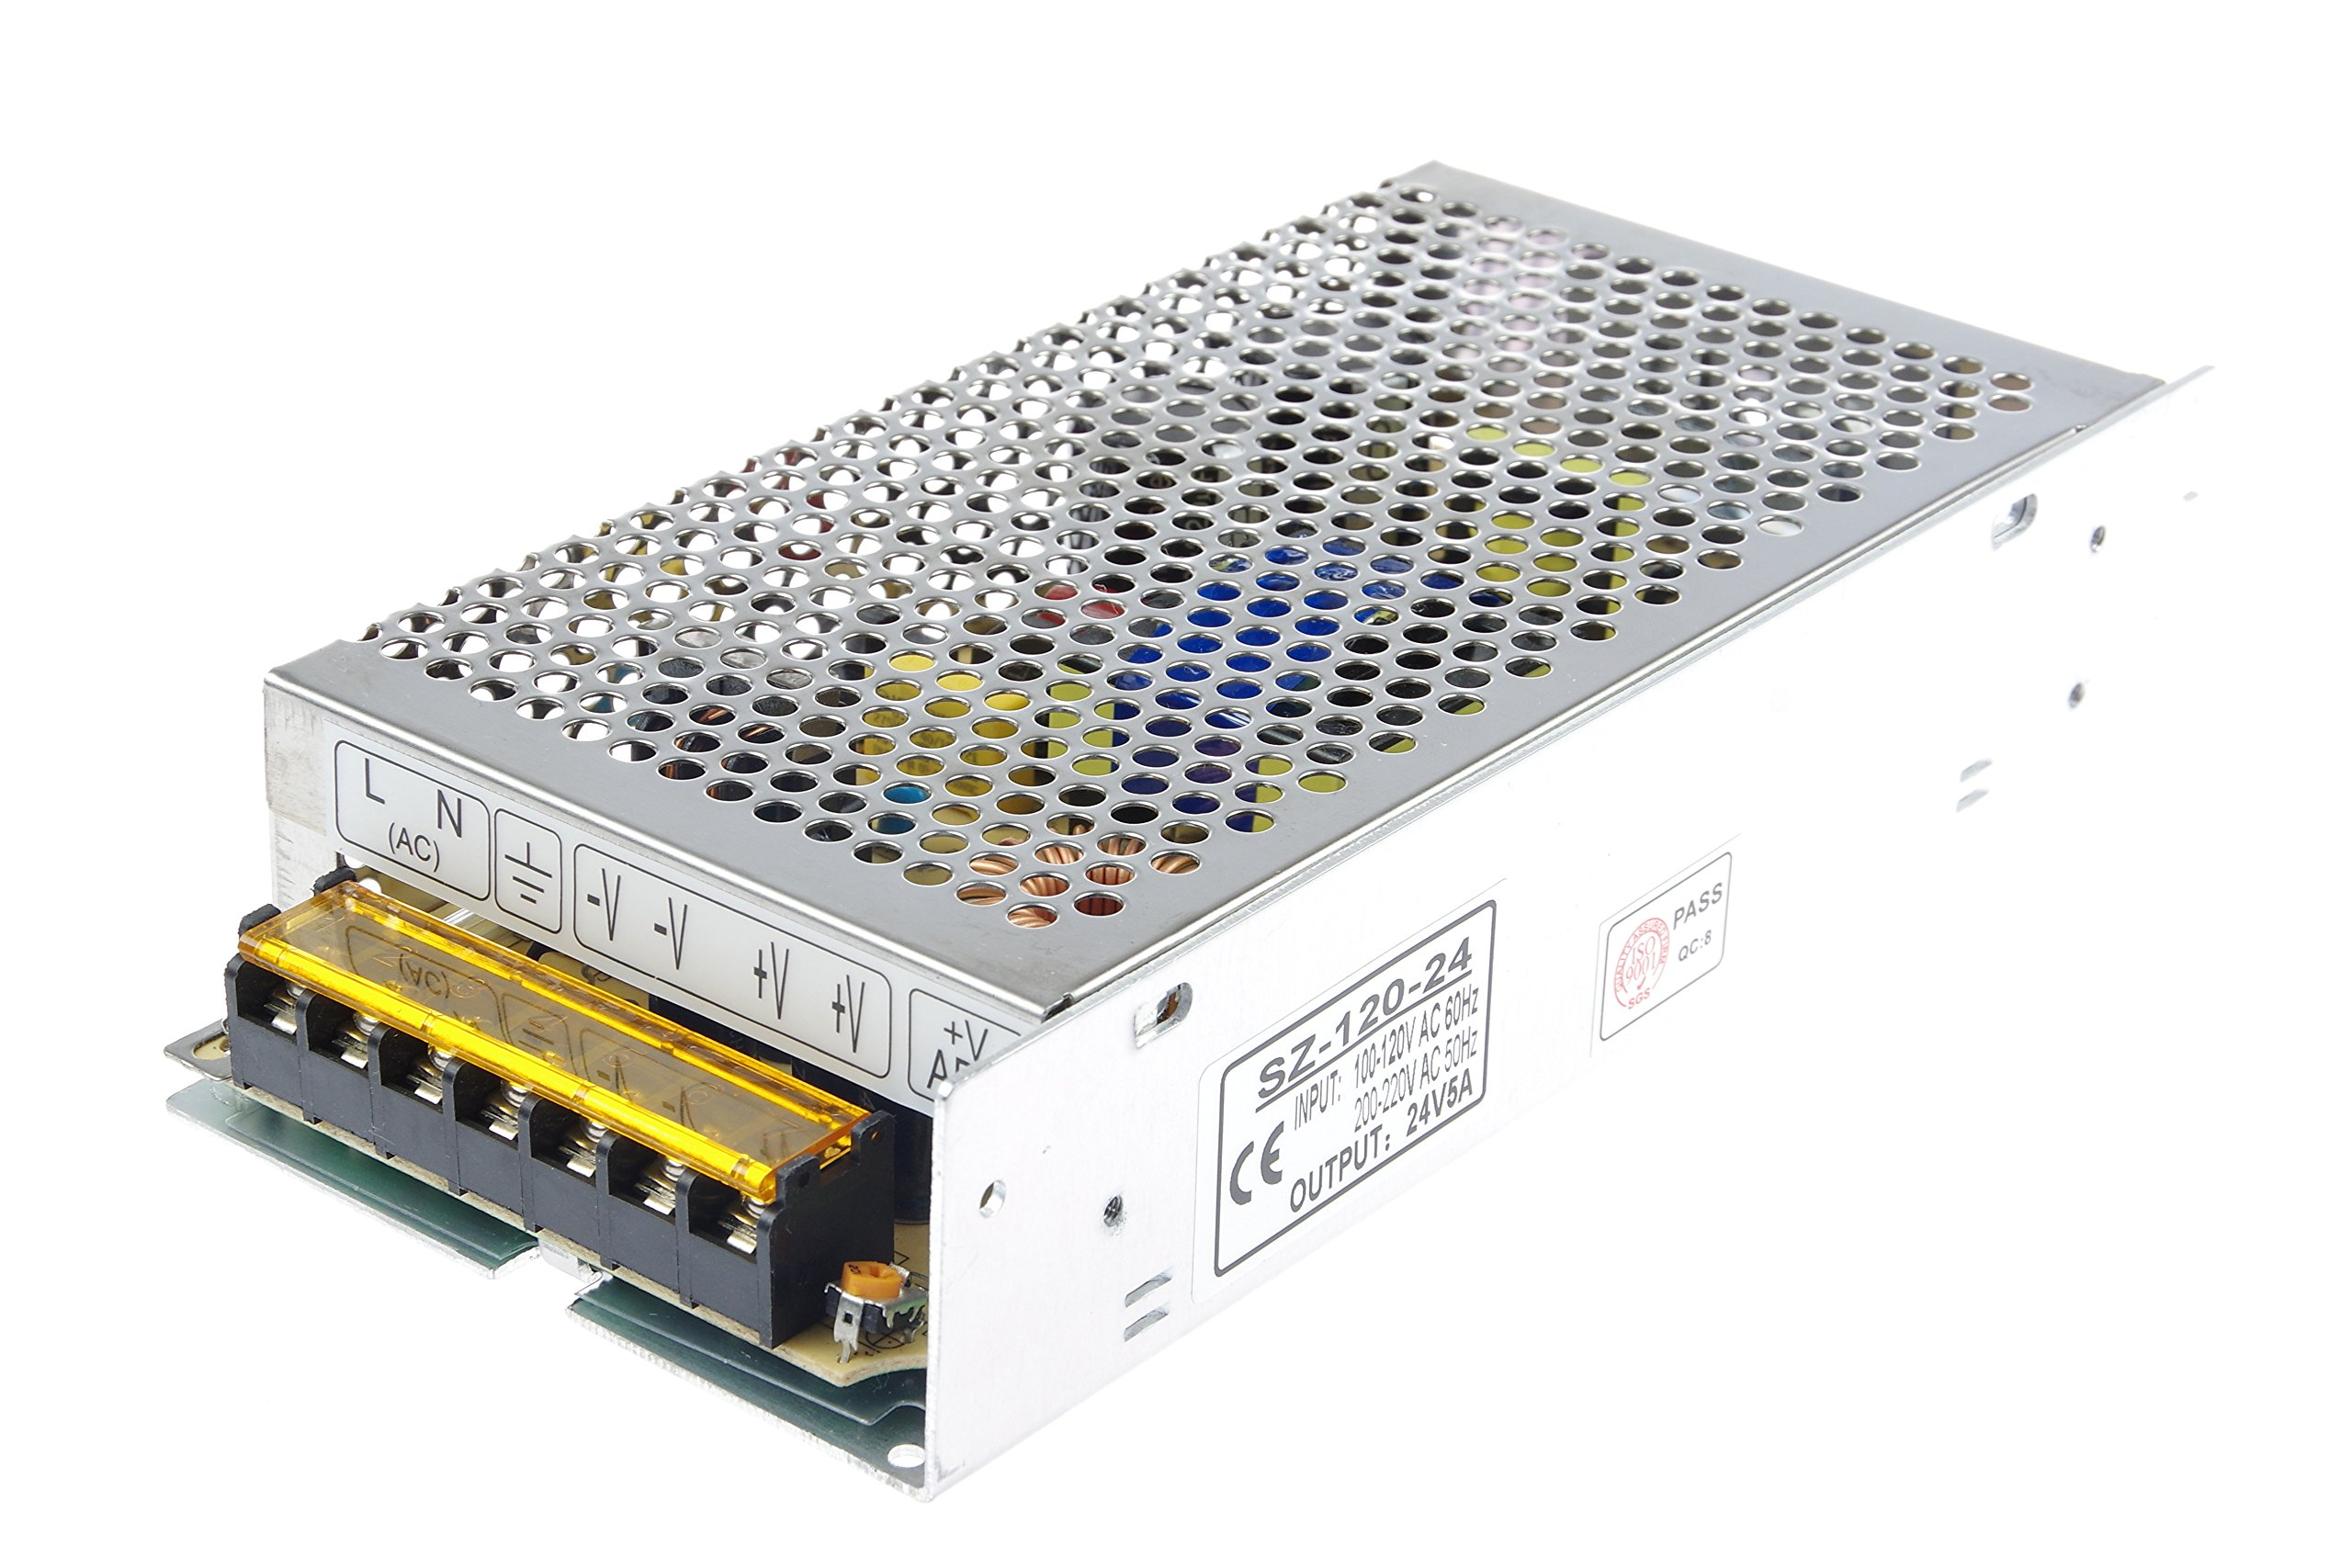 LM YN 110V/220V AC to DC 24V 5A 120W Switching Power Supply Driver,Power Transformer for CCTV camera, Security System, LED Strip Light, Radio, Computer Project by LM YN (Image #3)